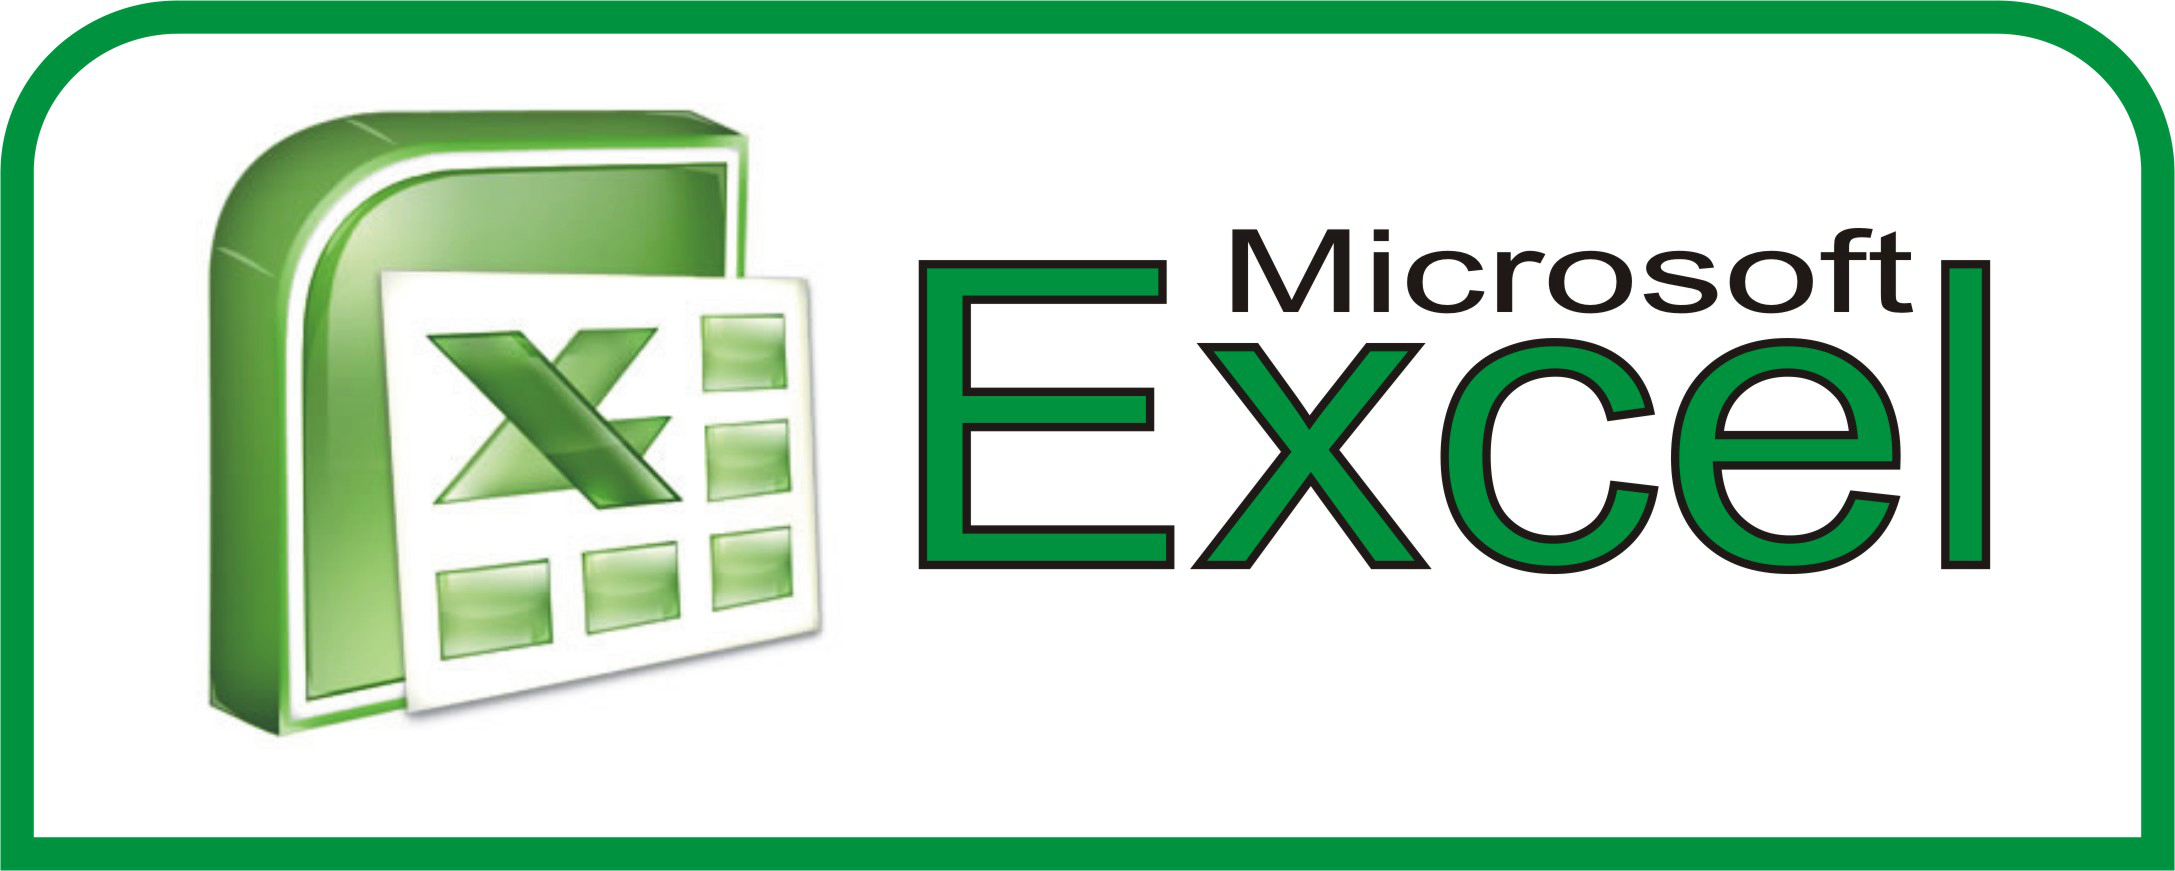 Ediblewildsus  Unusual  Excel Shortcuts You Probably Didnt Know About  Techdissected With Extraordinary Excel Pie Of Pie Besides How To Add Developer Tab In Excel  Furthermore Using If Statements In Excel With Archaic Excel Report Template Also Contains In Excel In Addition Excel Split First And Last Name And Export Google Contacts To Excel As Well As Link Excel To Word Additionally Excel Schedule From Techdissectedcom With Ediblewildsus  Extraordinary  Excel Shortcuts You Probably Didnt Know About  Techdissected With Archaic Excel Pie Of Pie Besides How To Add Developer Tab In Excel  Furthermore Using If Statements In Excel And Unusual Excel Report Template Also Contains In Excel In Addition Excel Split First And Last Name From Techdissectedcom